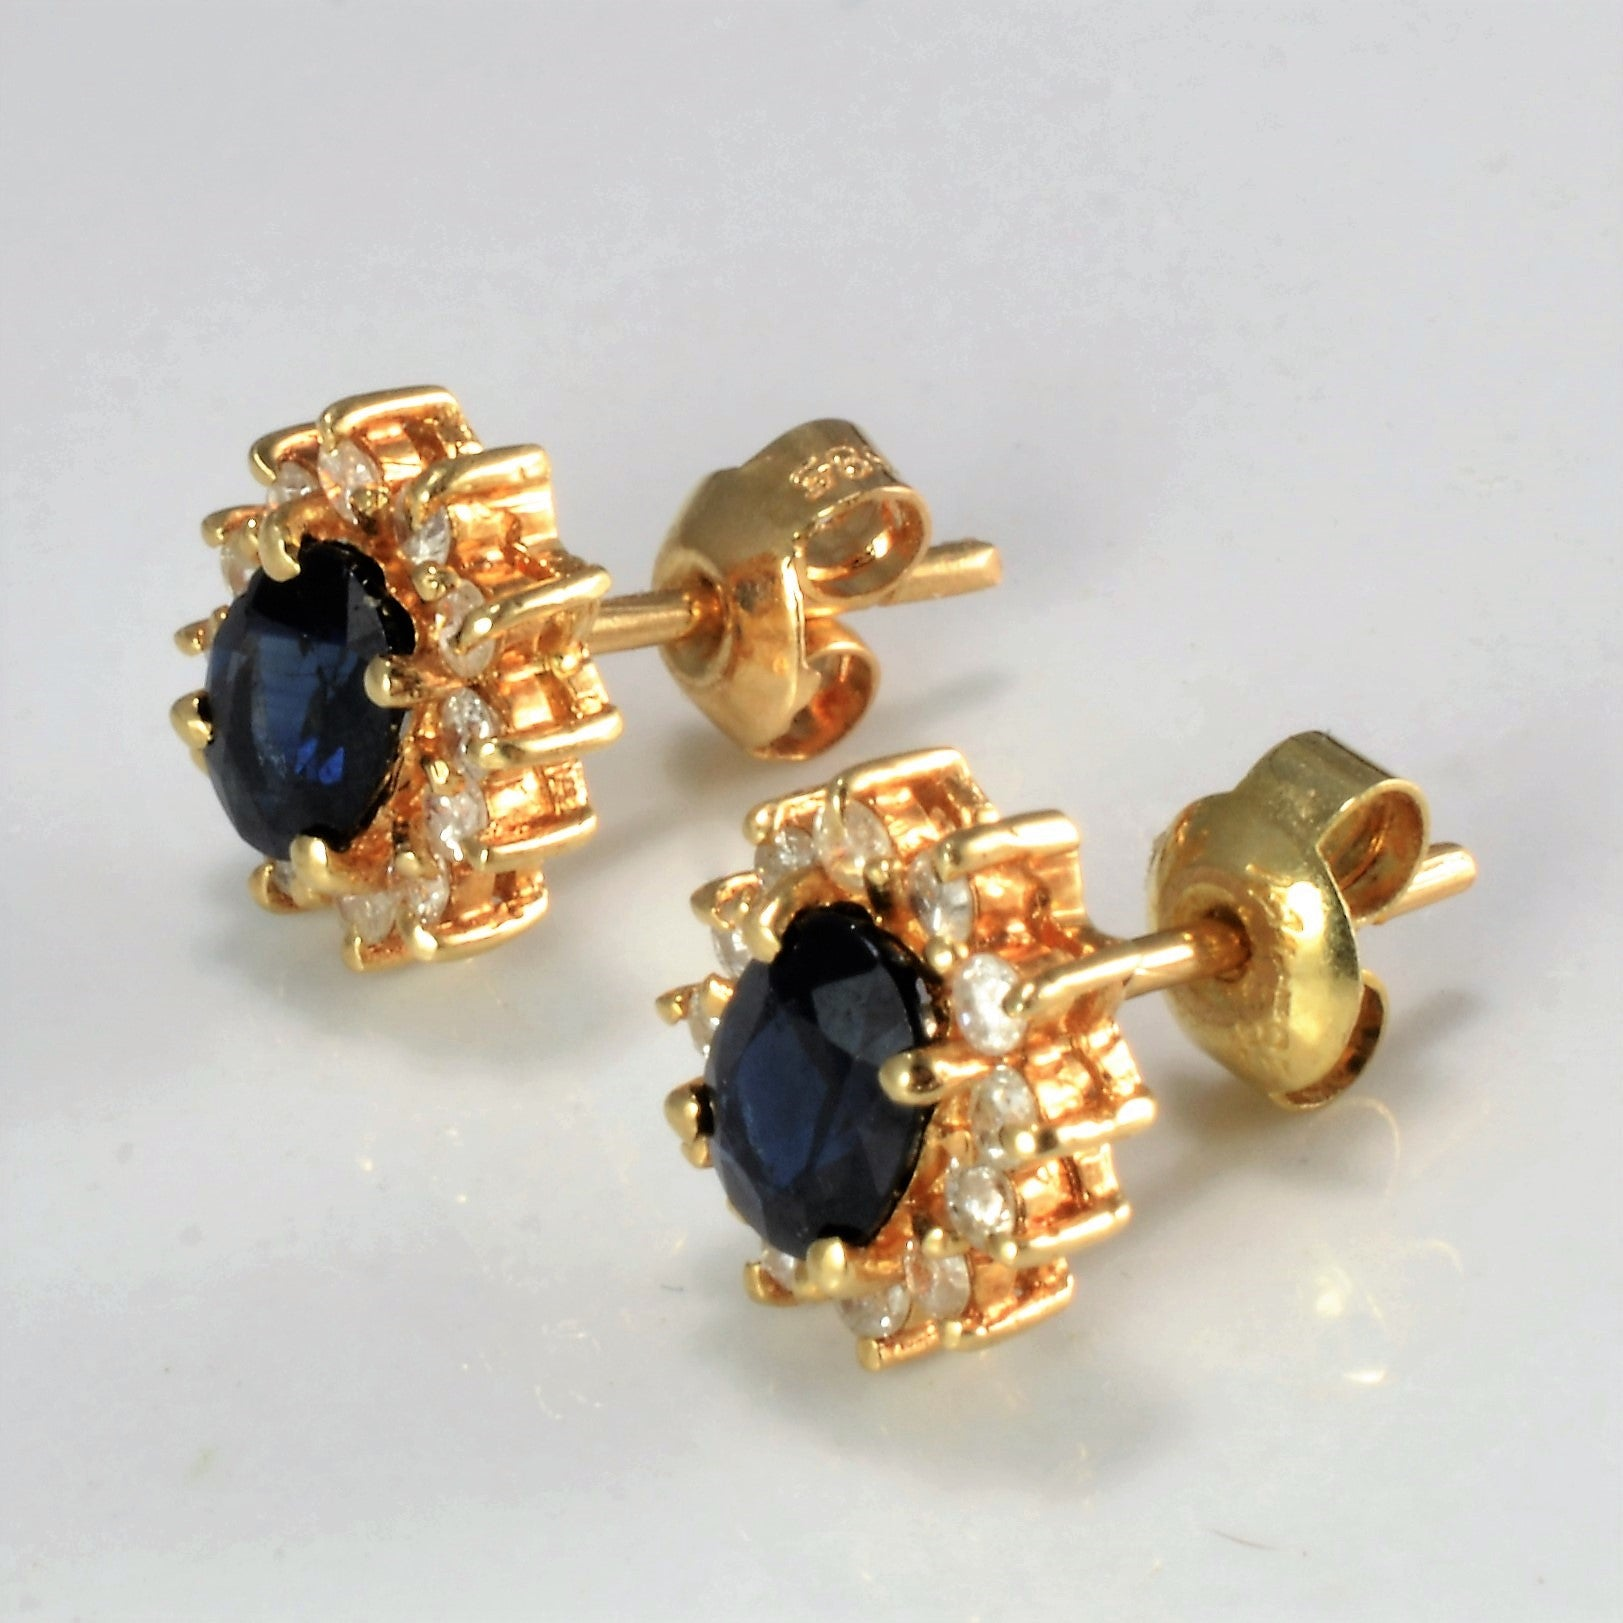 Sapphire & Diamond Stud Earrings | 0.25 ctw |